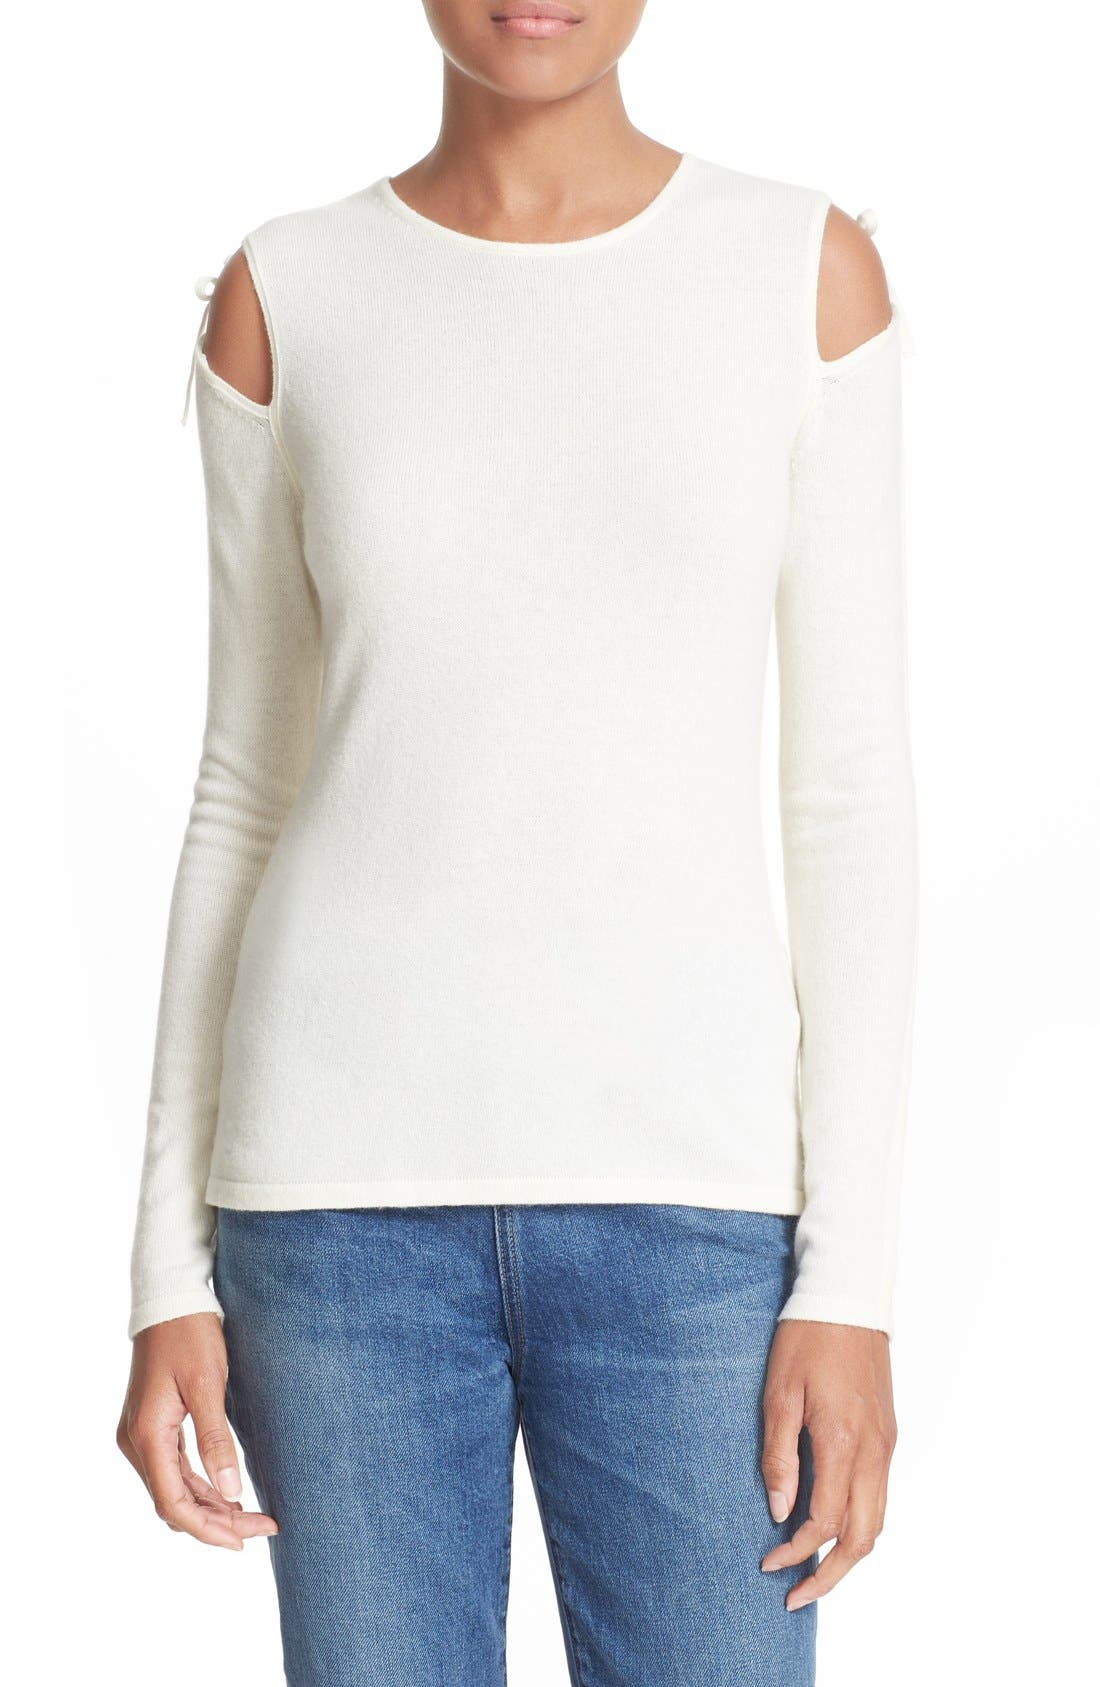 ELIZABETH AND JAMES Ryan Tie Cold Shoulder Sweater